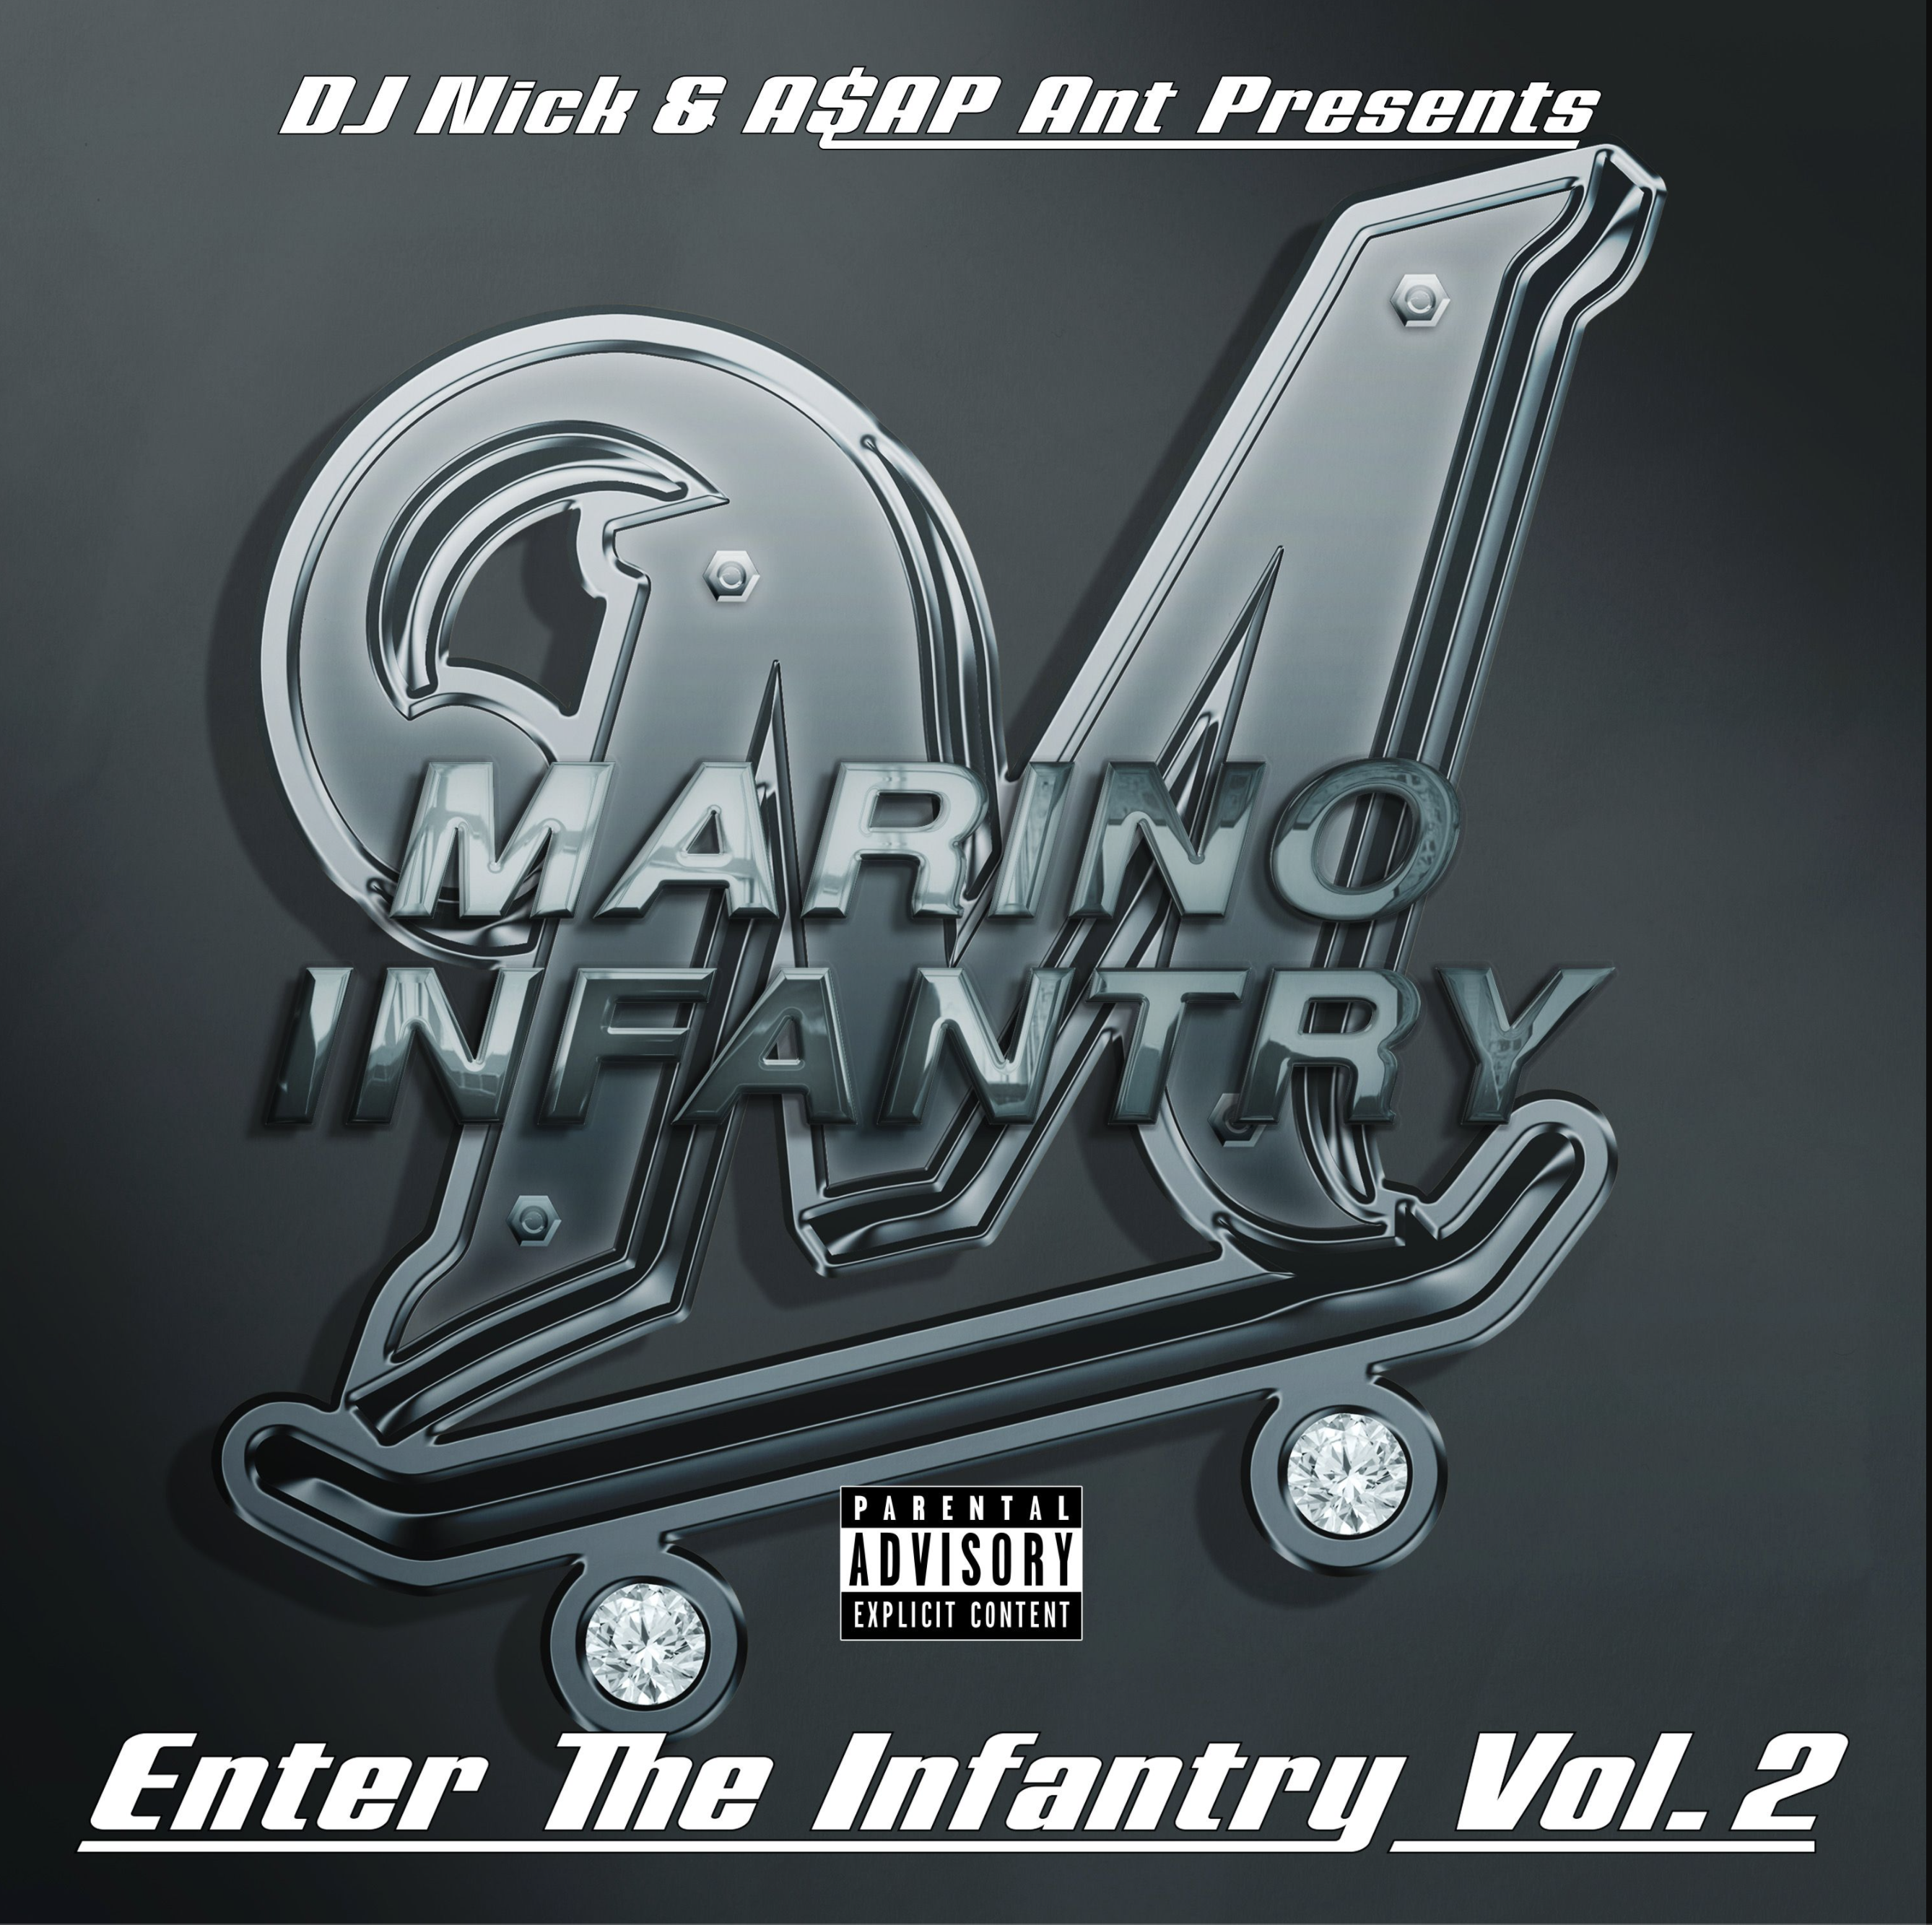 DJ Nick and A$AP Ant Present: Marino Infantry: 'Enter the Infantry, Vol. 2'